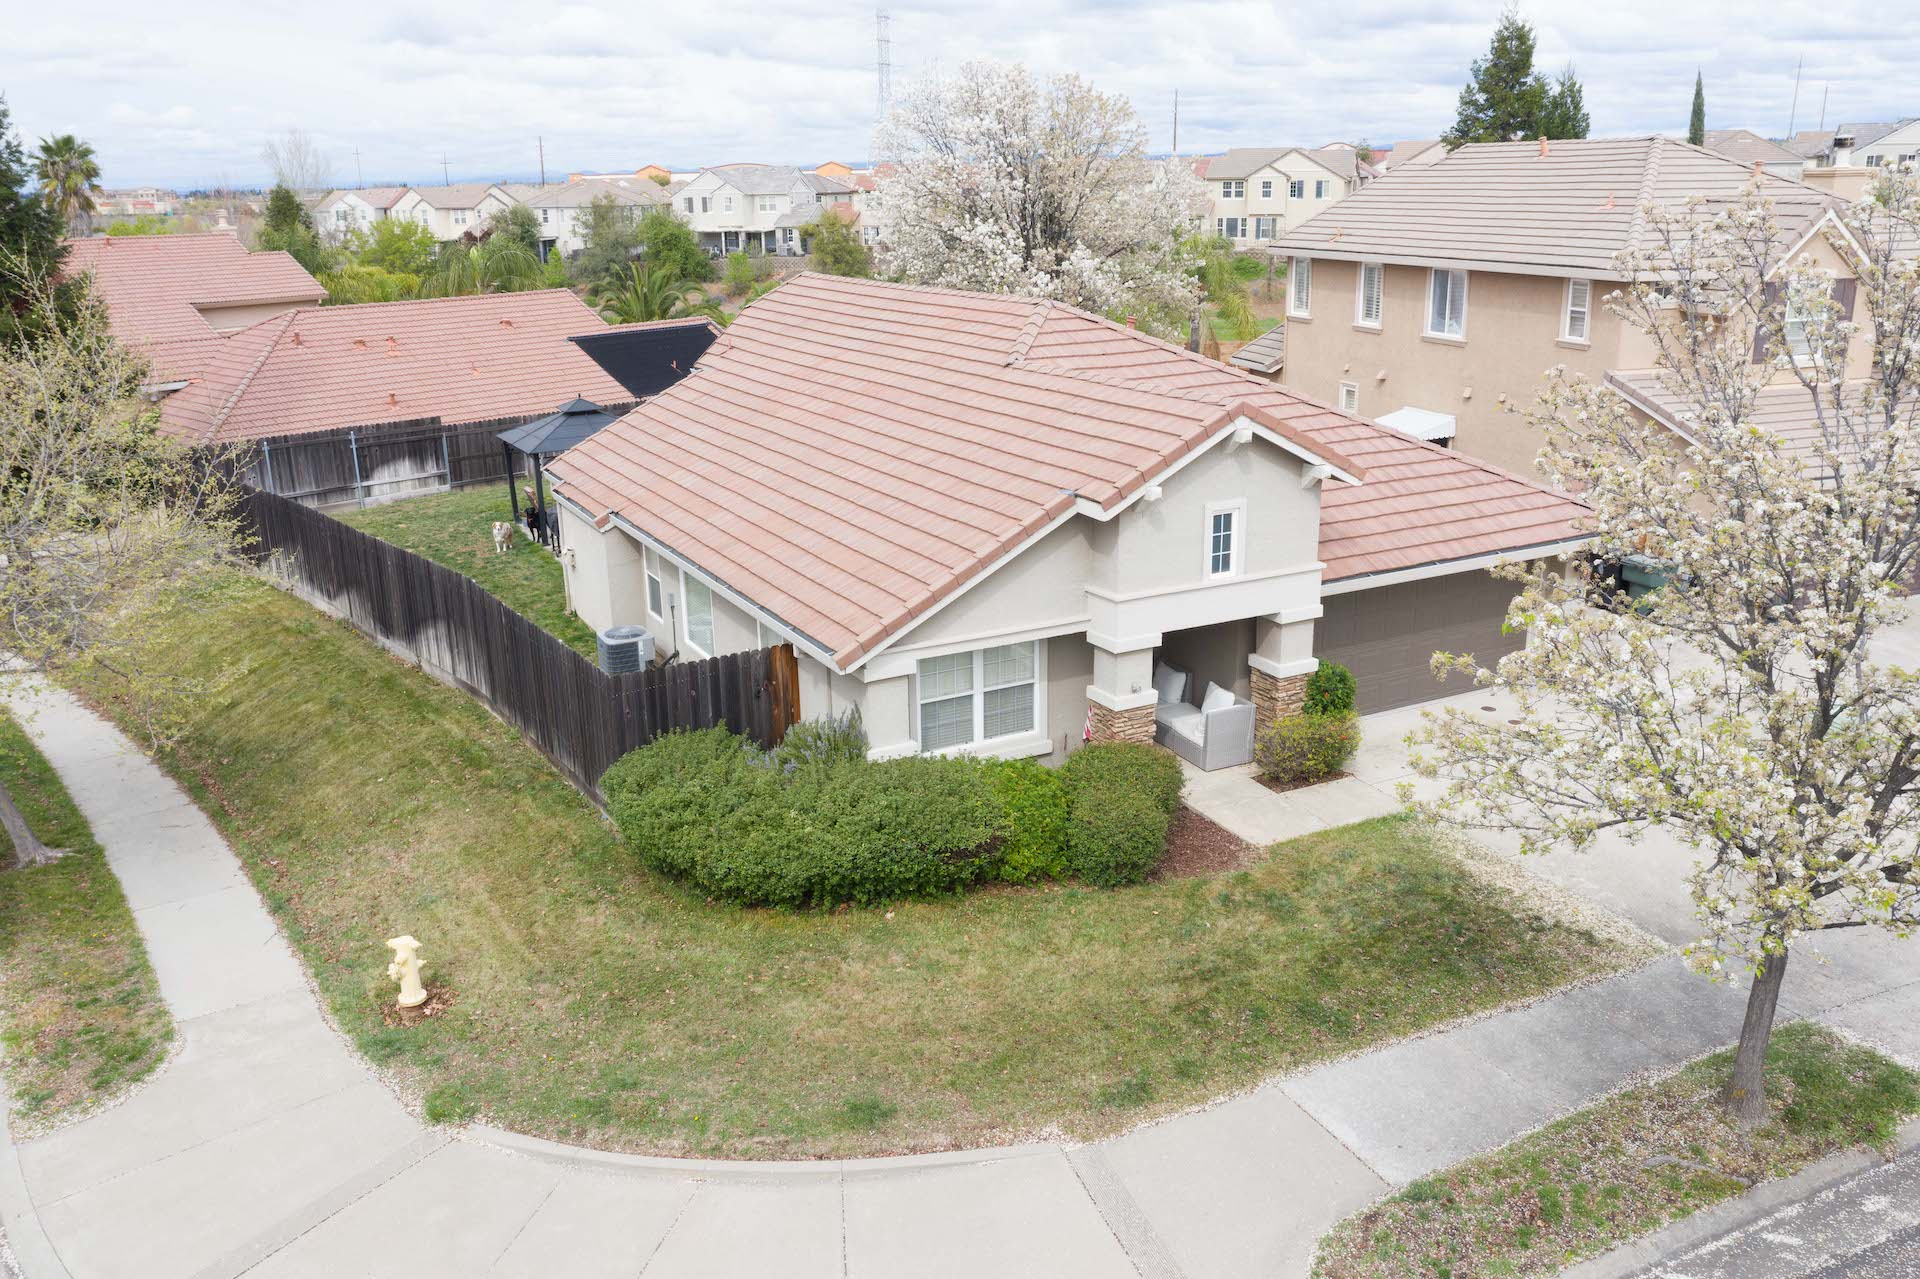 157 Clydesdale Way, Roseville, California 95678